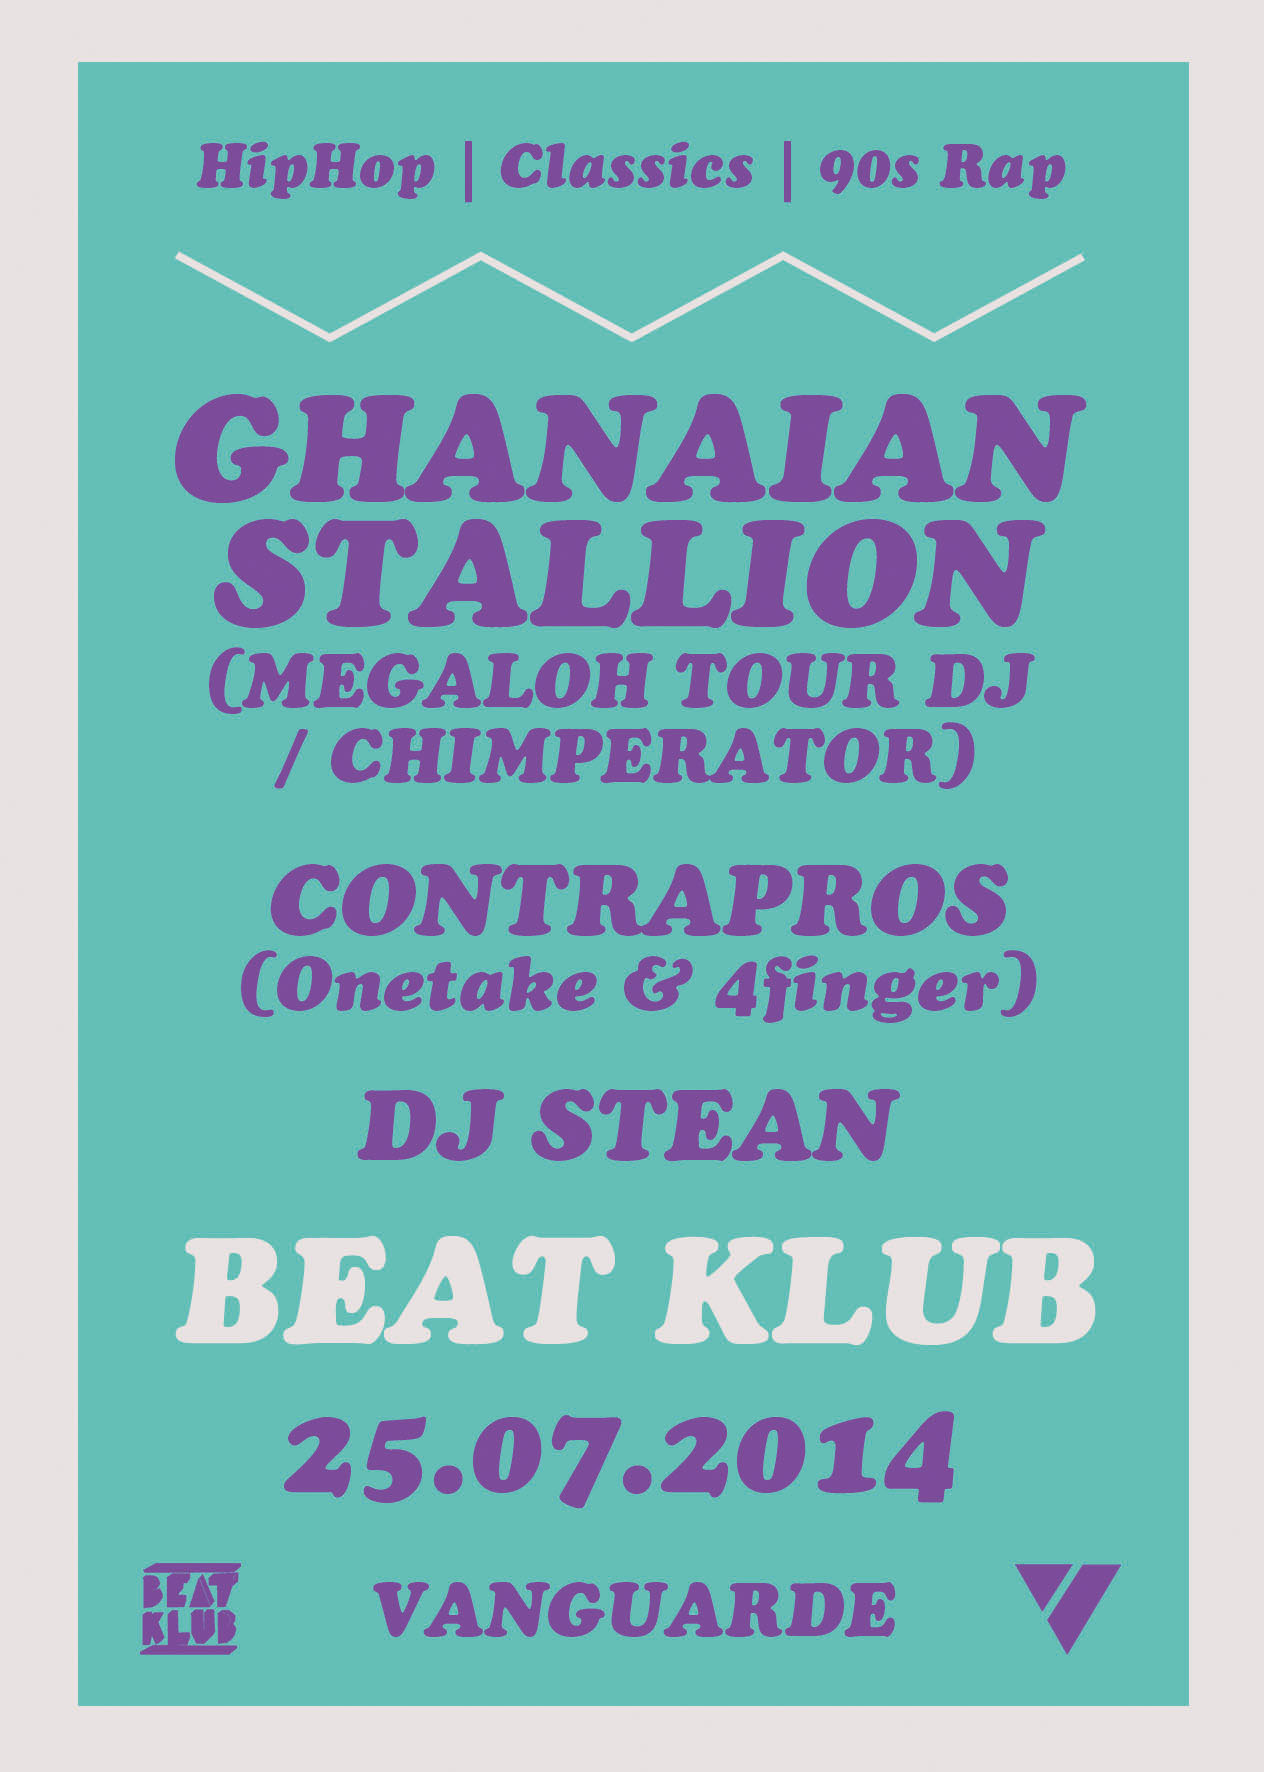 25.07.2014 | BEAT KLUB mit GHANAIAN STALLION (DAS FEST AFTERPARTY)